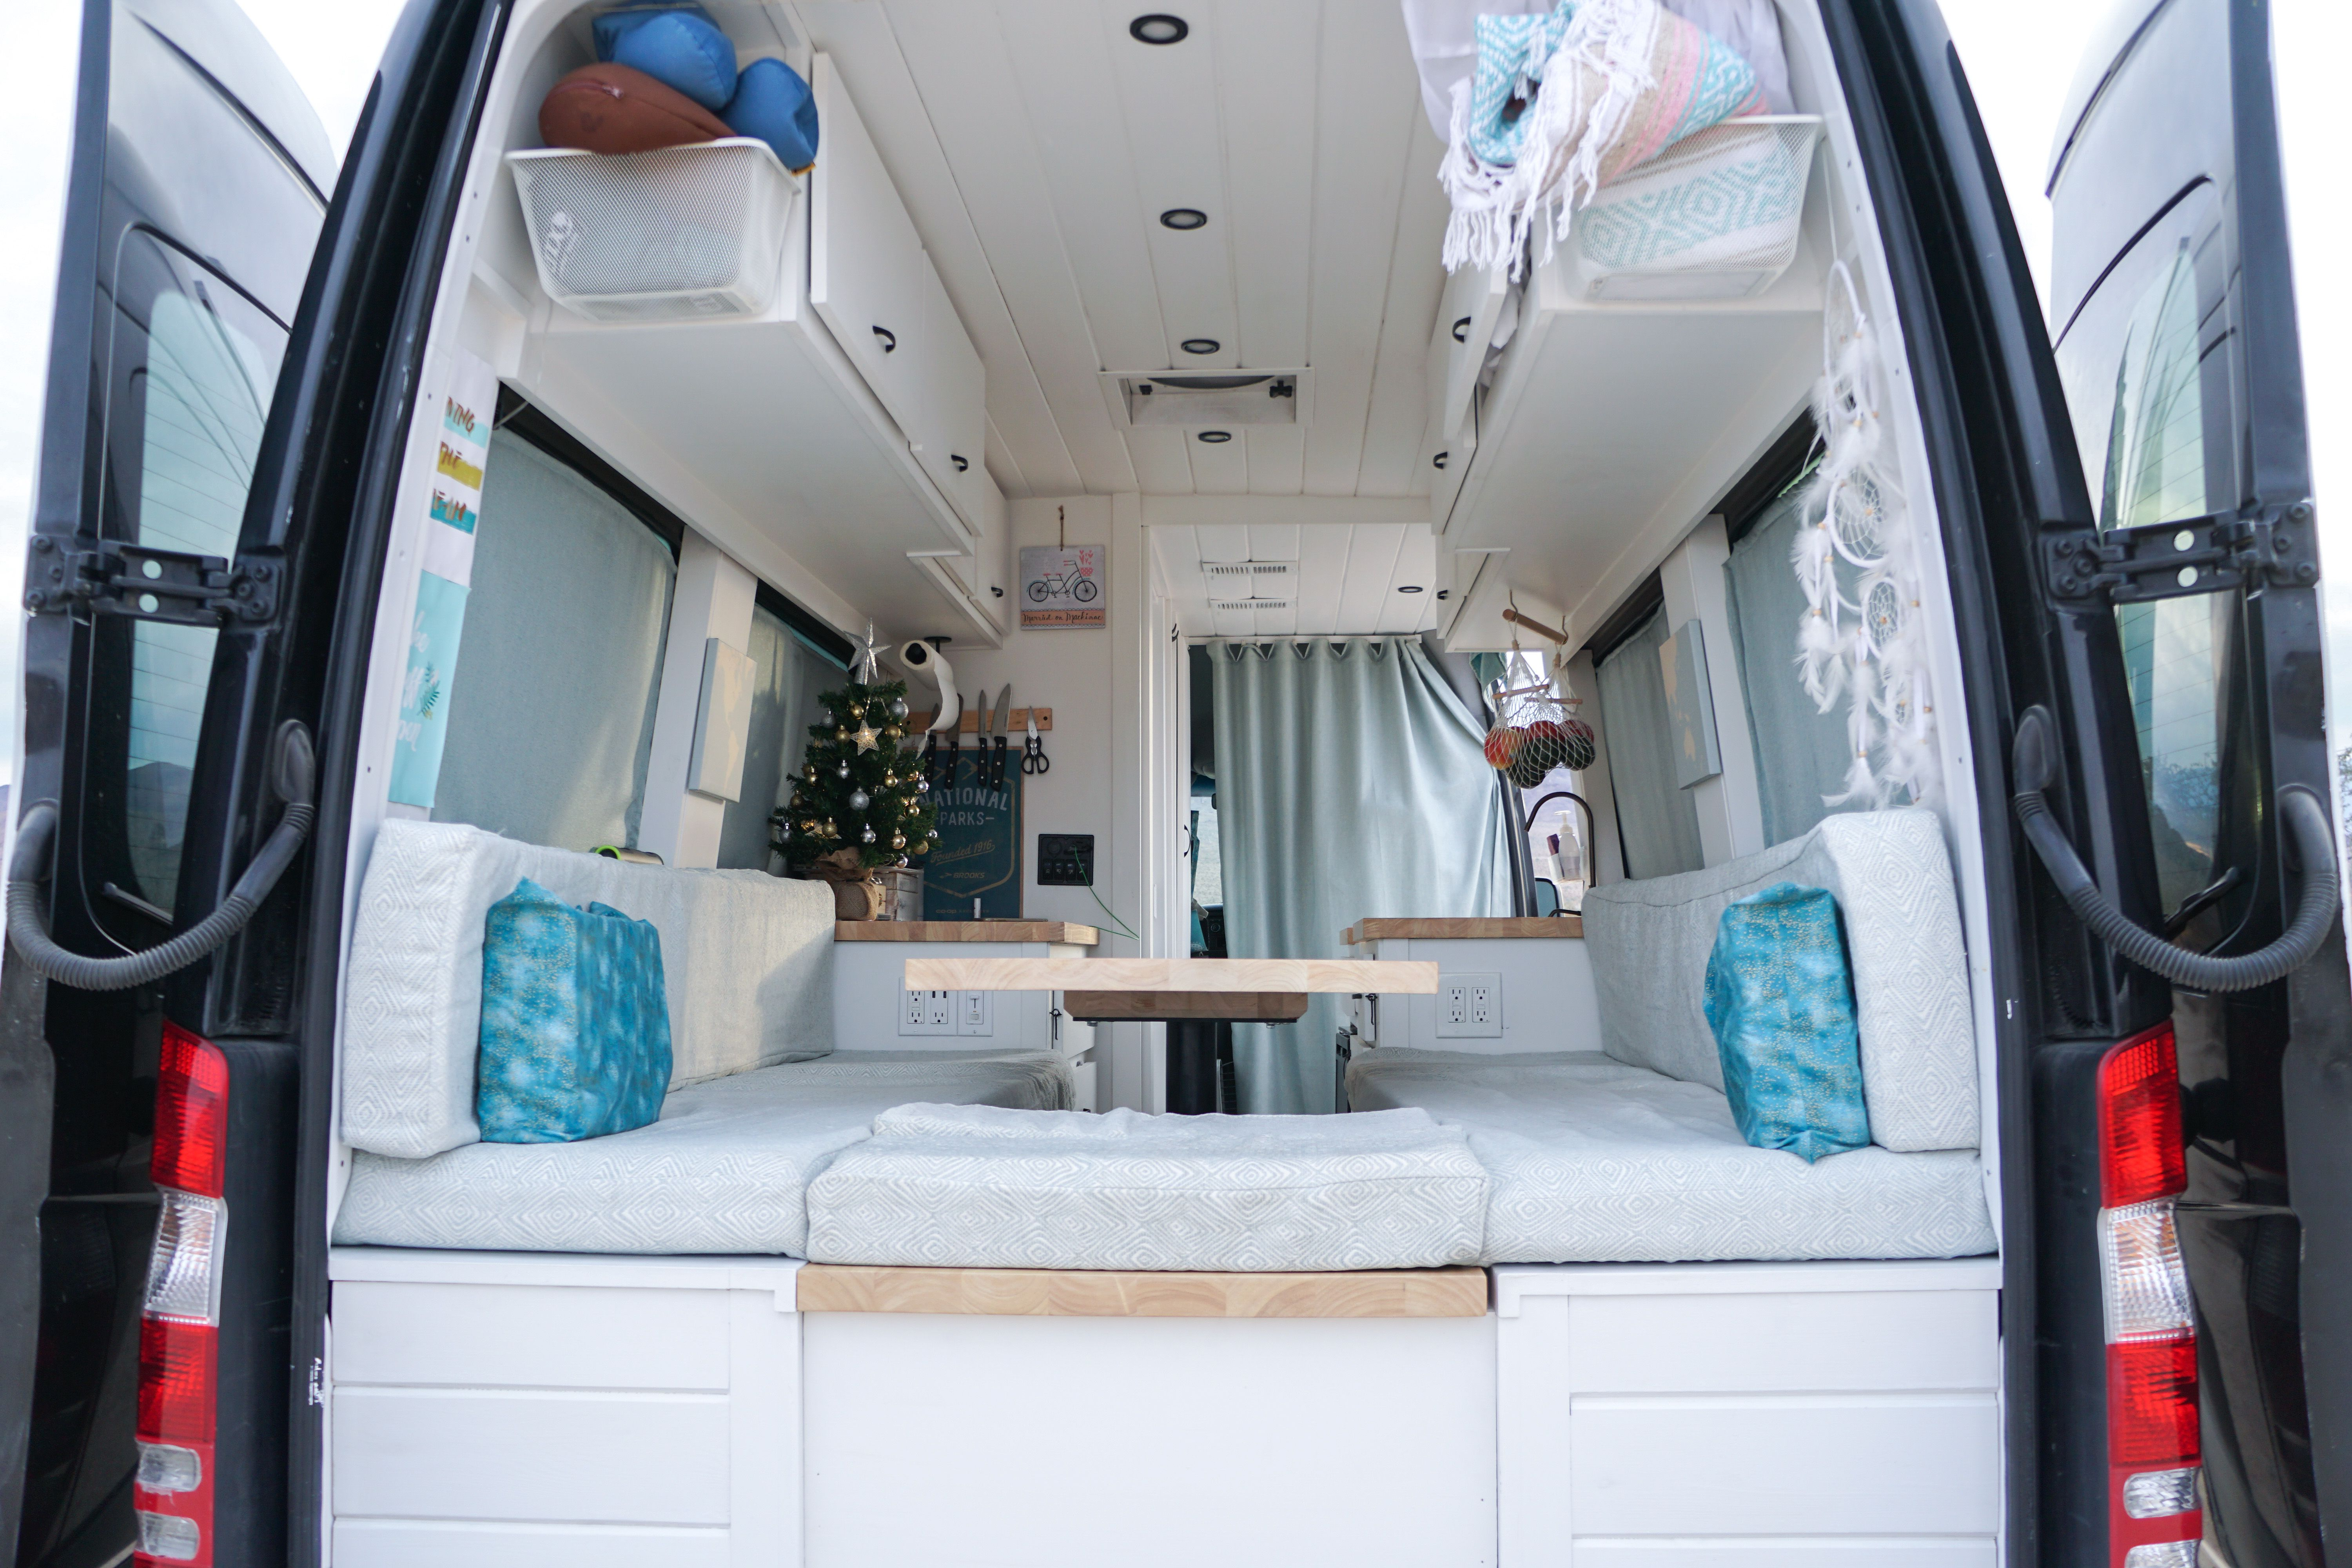 Van Life Tour Diy Sprinter Van Conversion Van Home Van Life